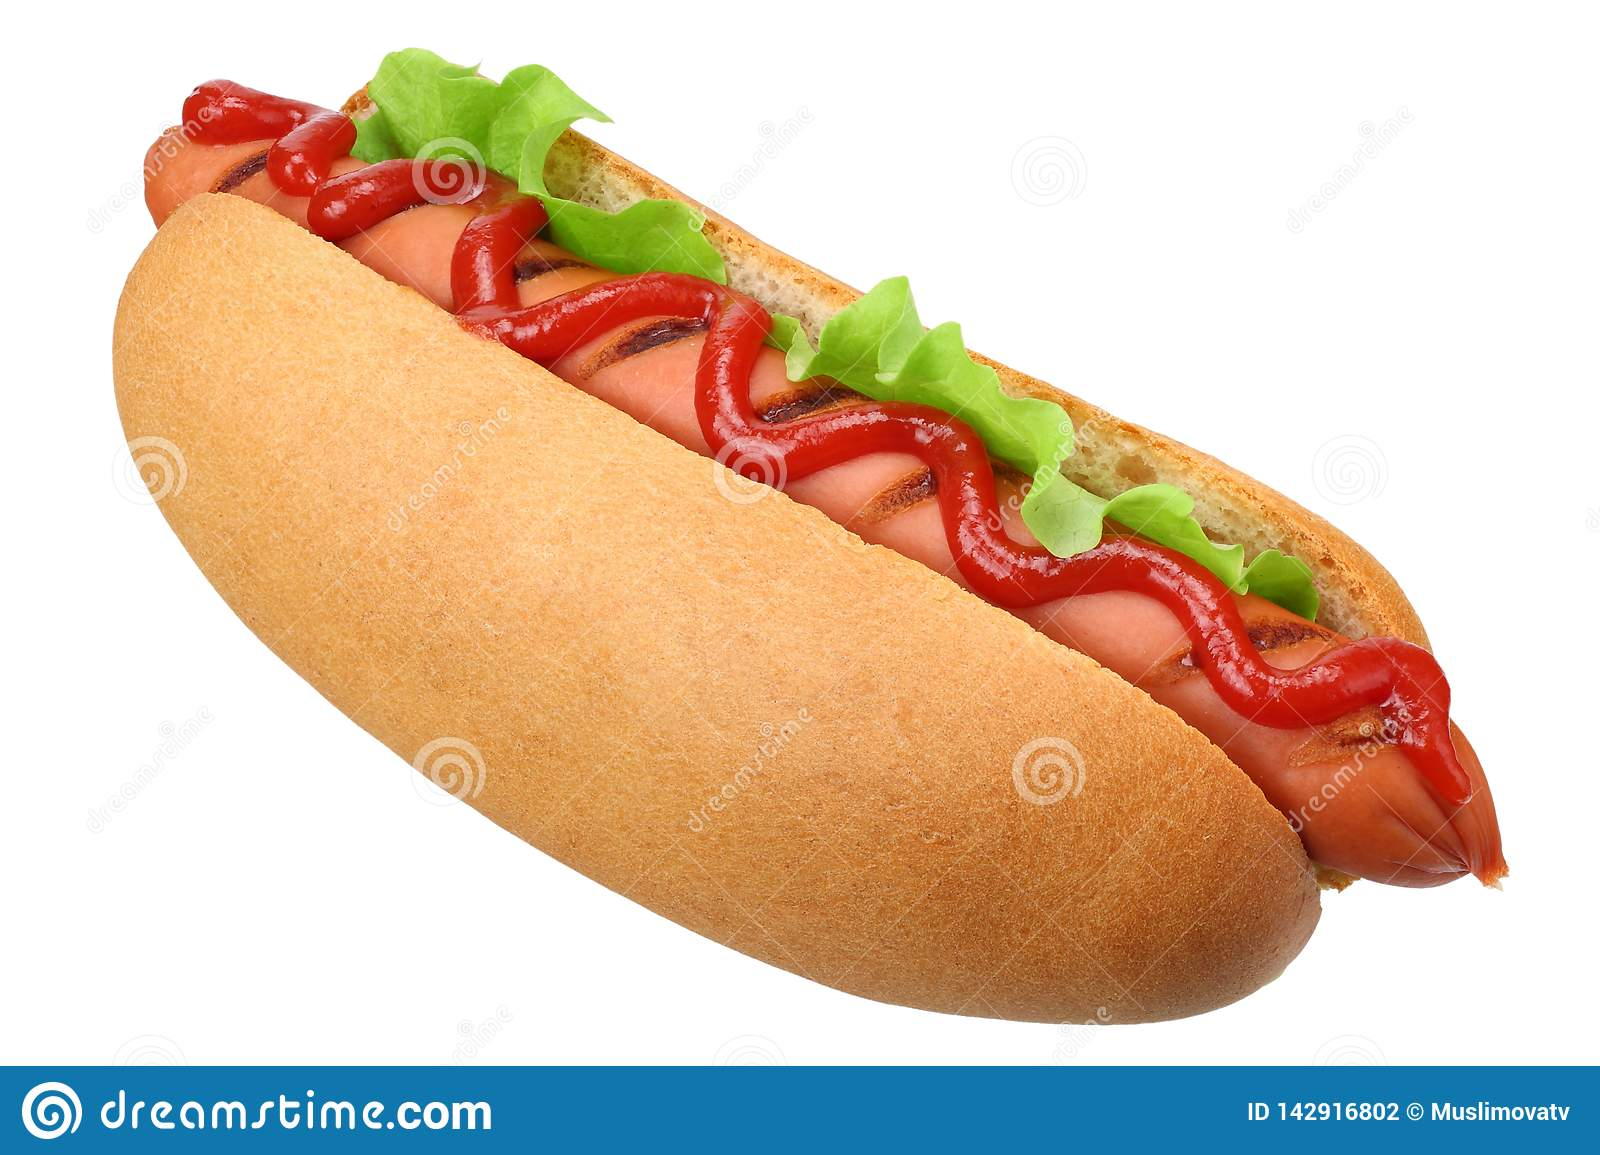 Hot dog grill with lettuce isolated on white background. fast food